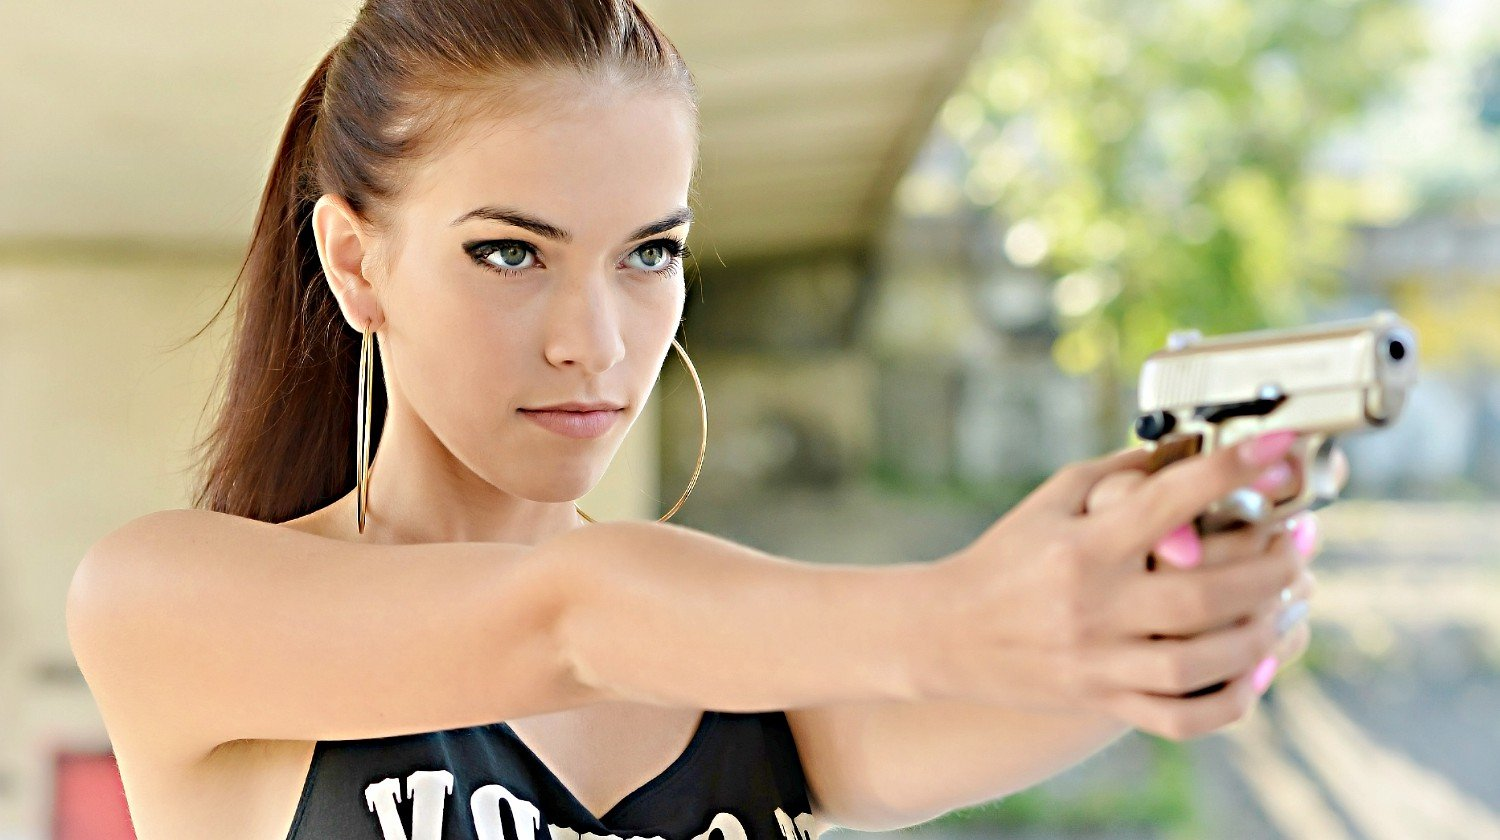 Feature | Beautiful woman with gun | What's The Best Handgun For Women?